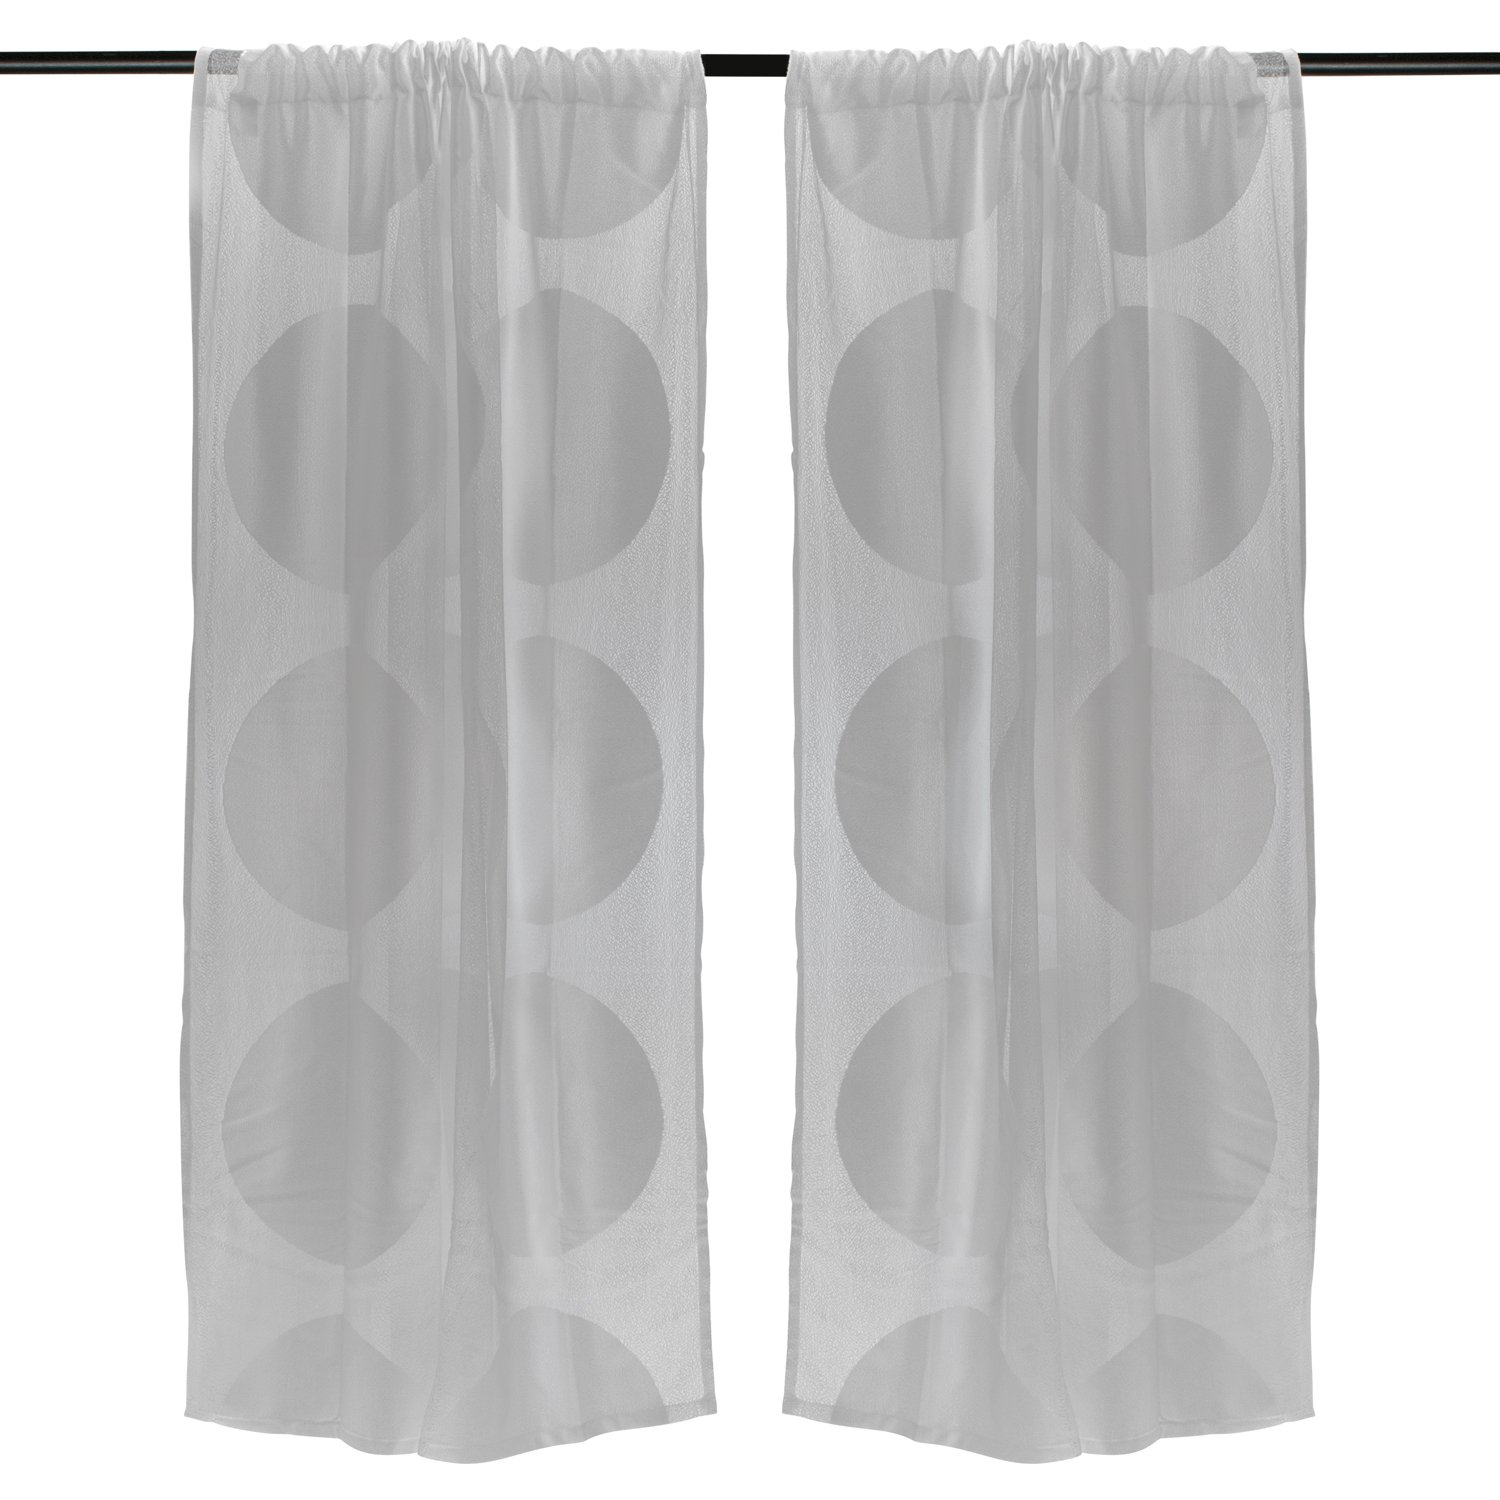 DII Elegant Decorative Sheer Curtain, Panels, Window Treatments or Drape, For Small Windows, in Living Room, Kitchen, Bedroom, Kids Rooms, 50x63 (Set of 2) - White Lattice CAMZ33456